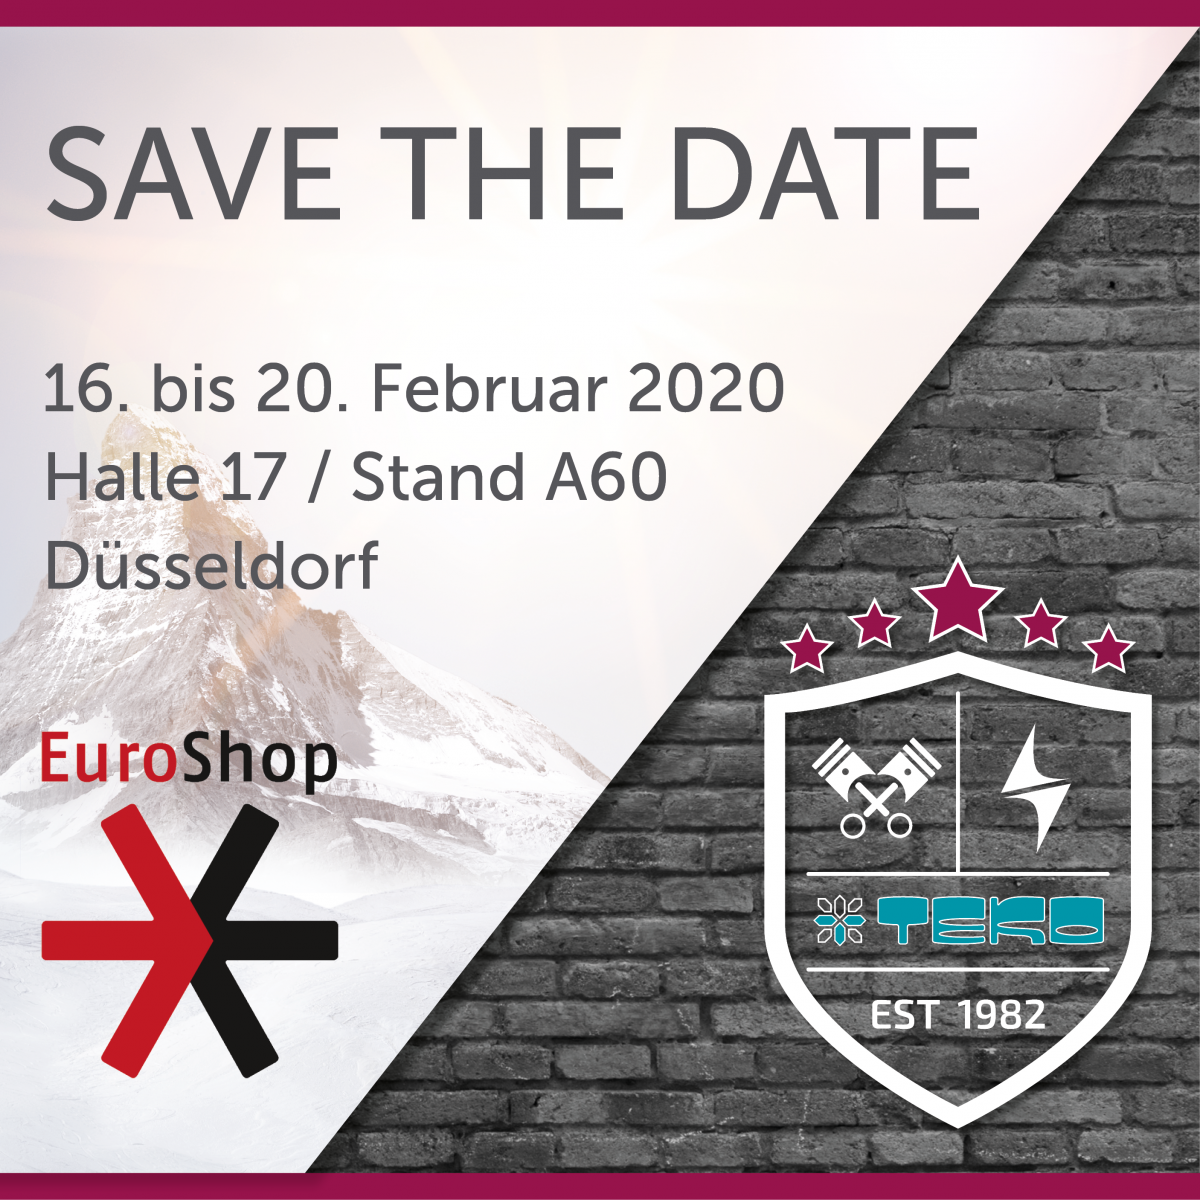 teko news save the date euroshop 2019 6750x675   - SAVE THE DATE - Euroshop 2020